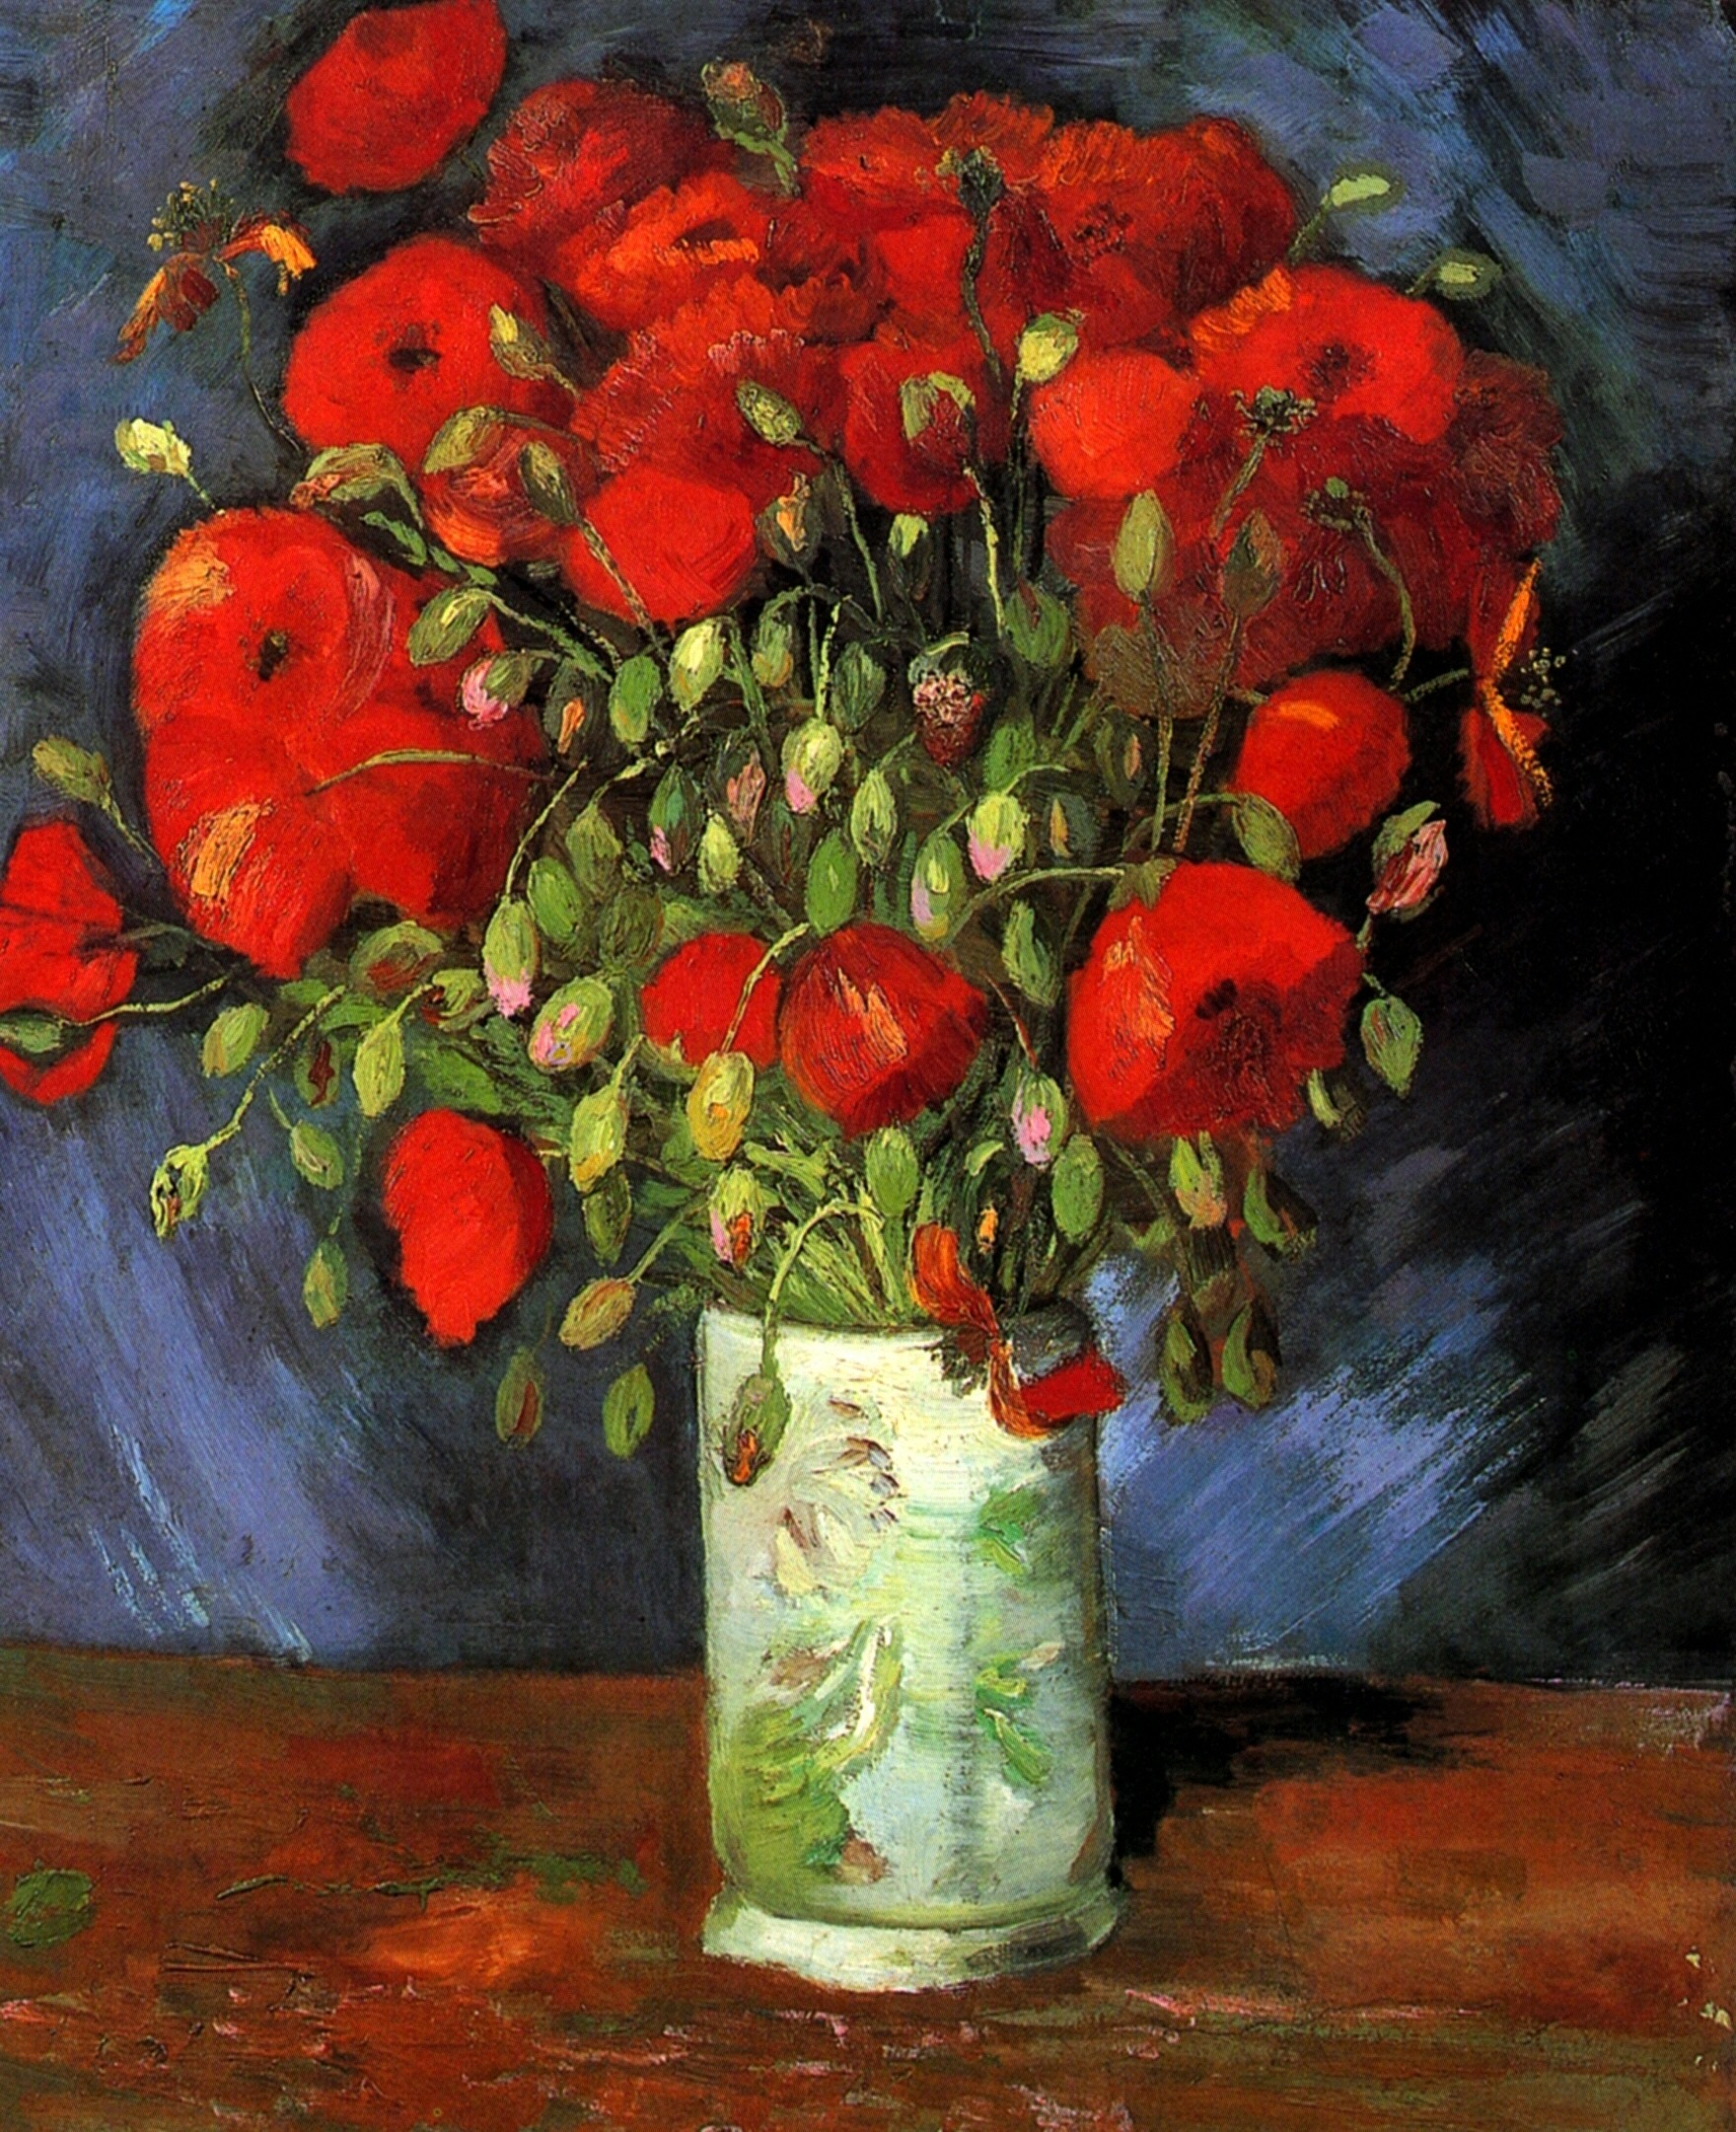 Vincent an gogh  vase with red poppies  1886